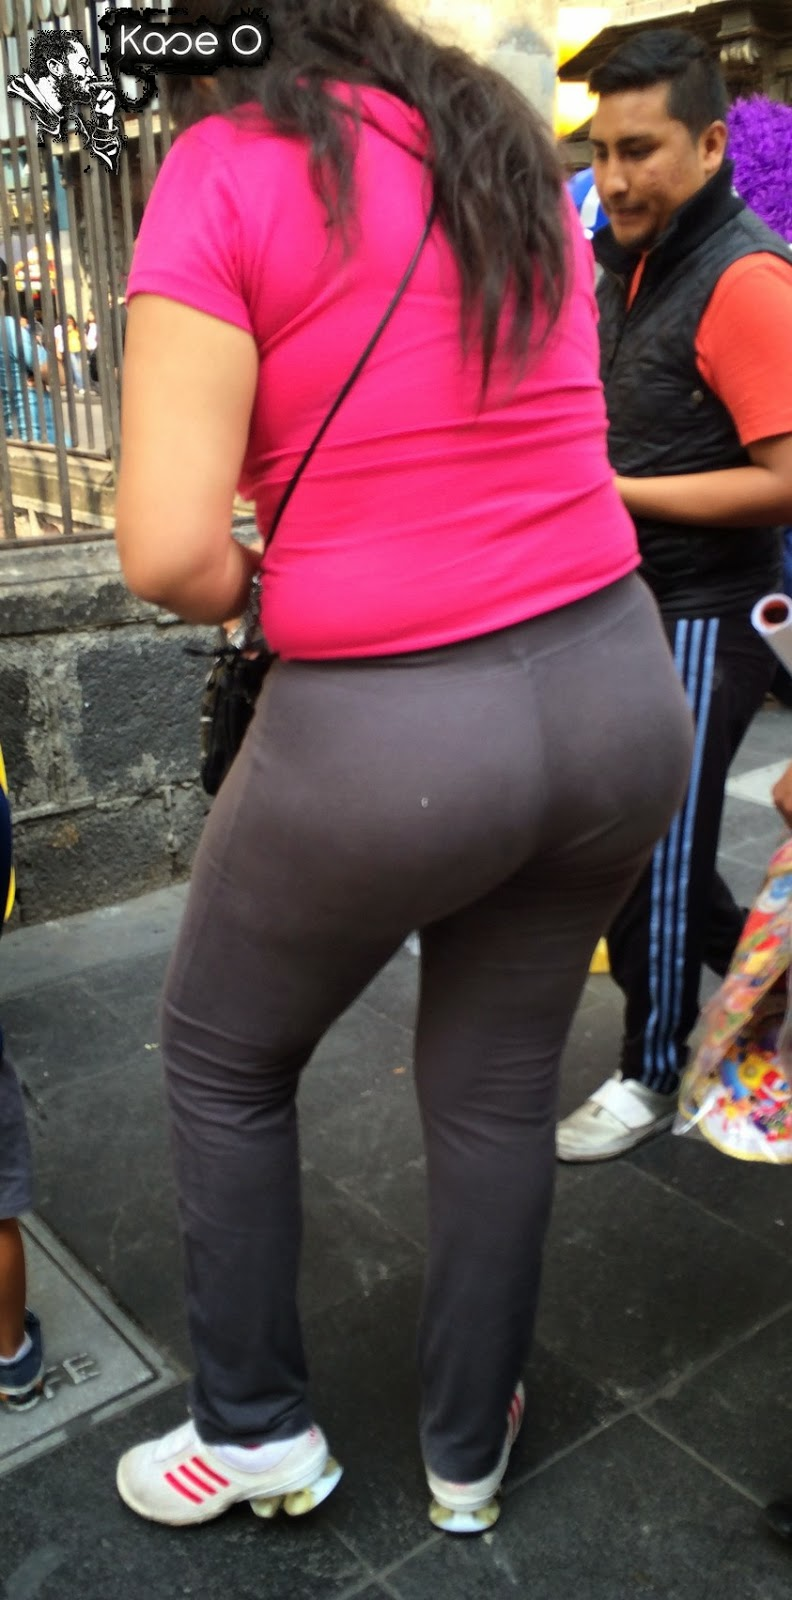 Sexy Girls On The Street, Girls In Jeans, Spandex And -1491